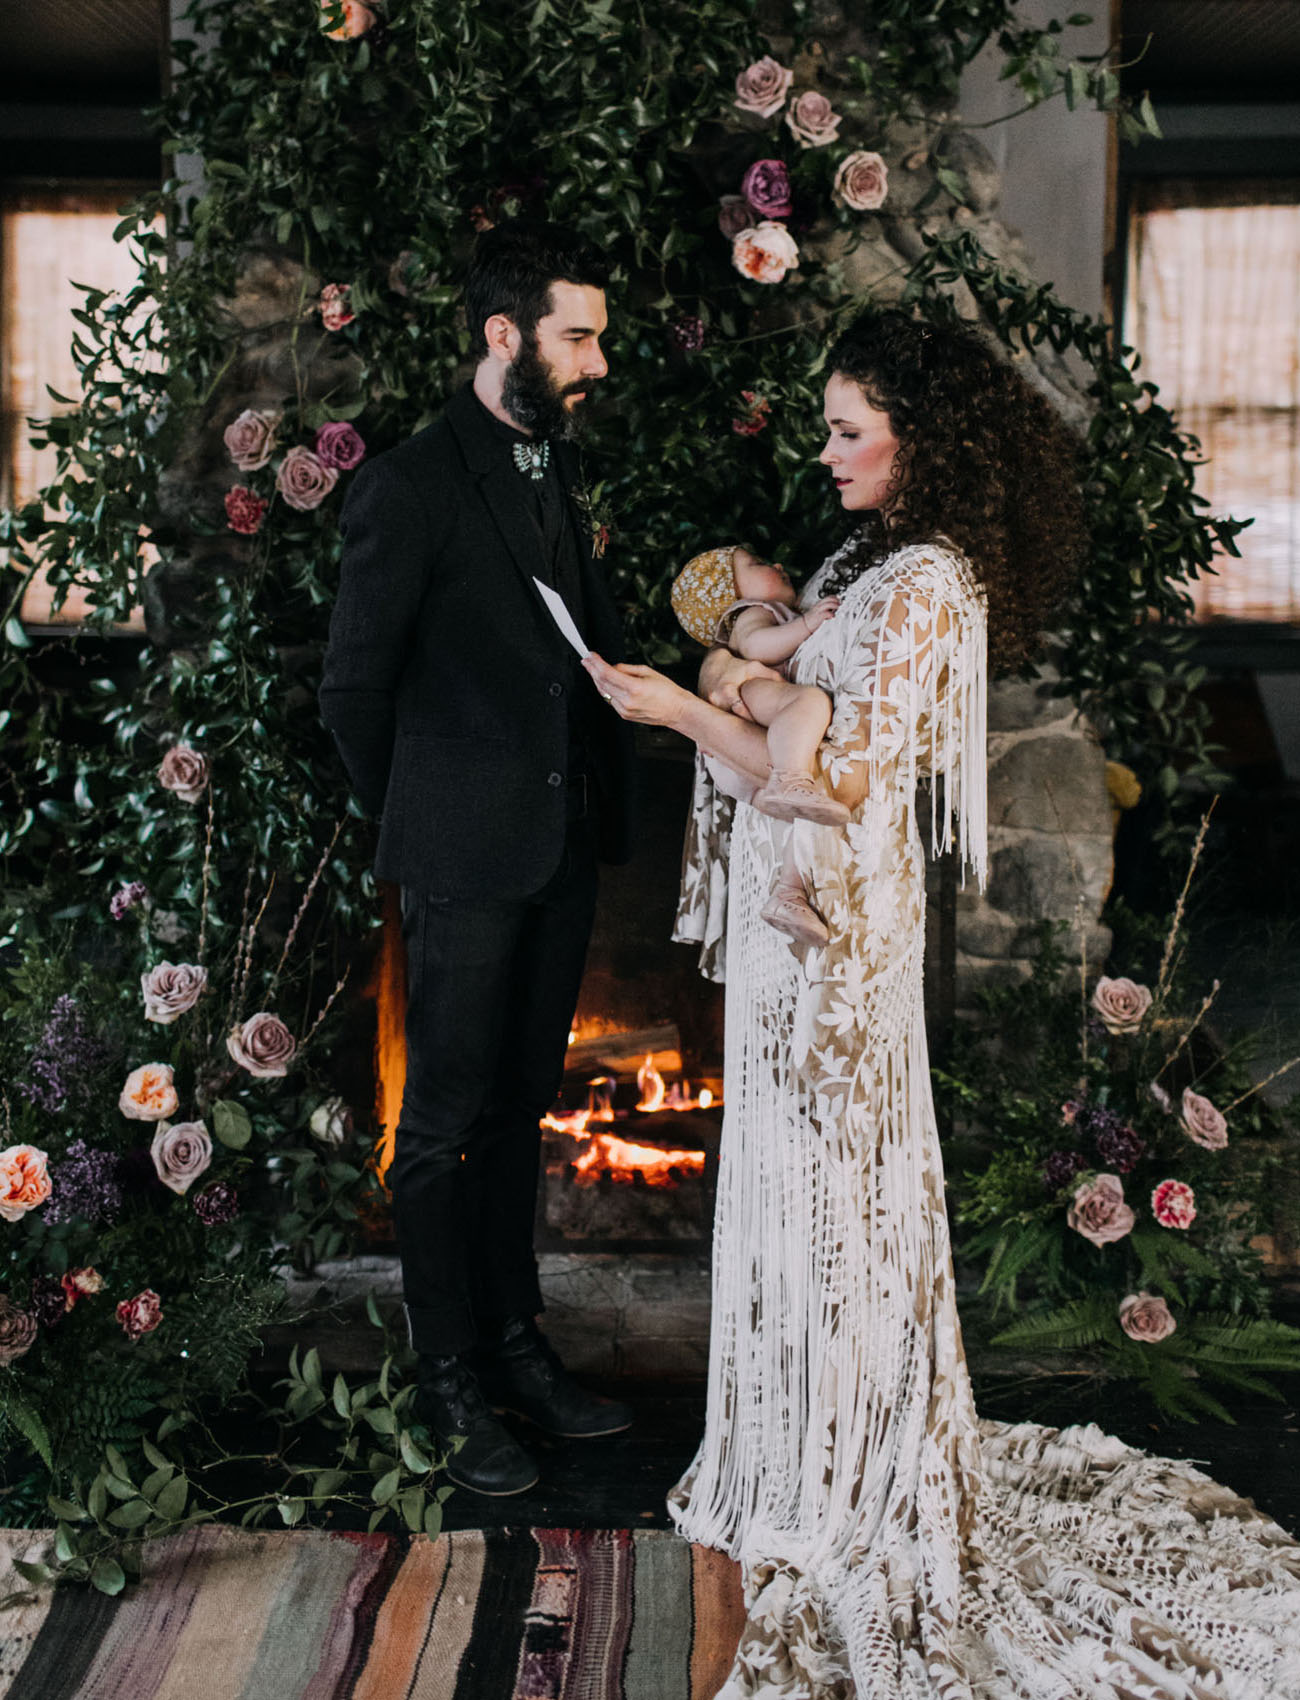 Catskills New York Vow Renewal